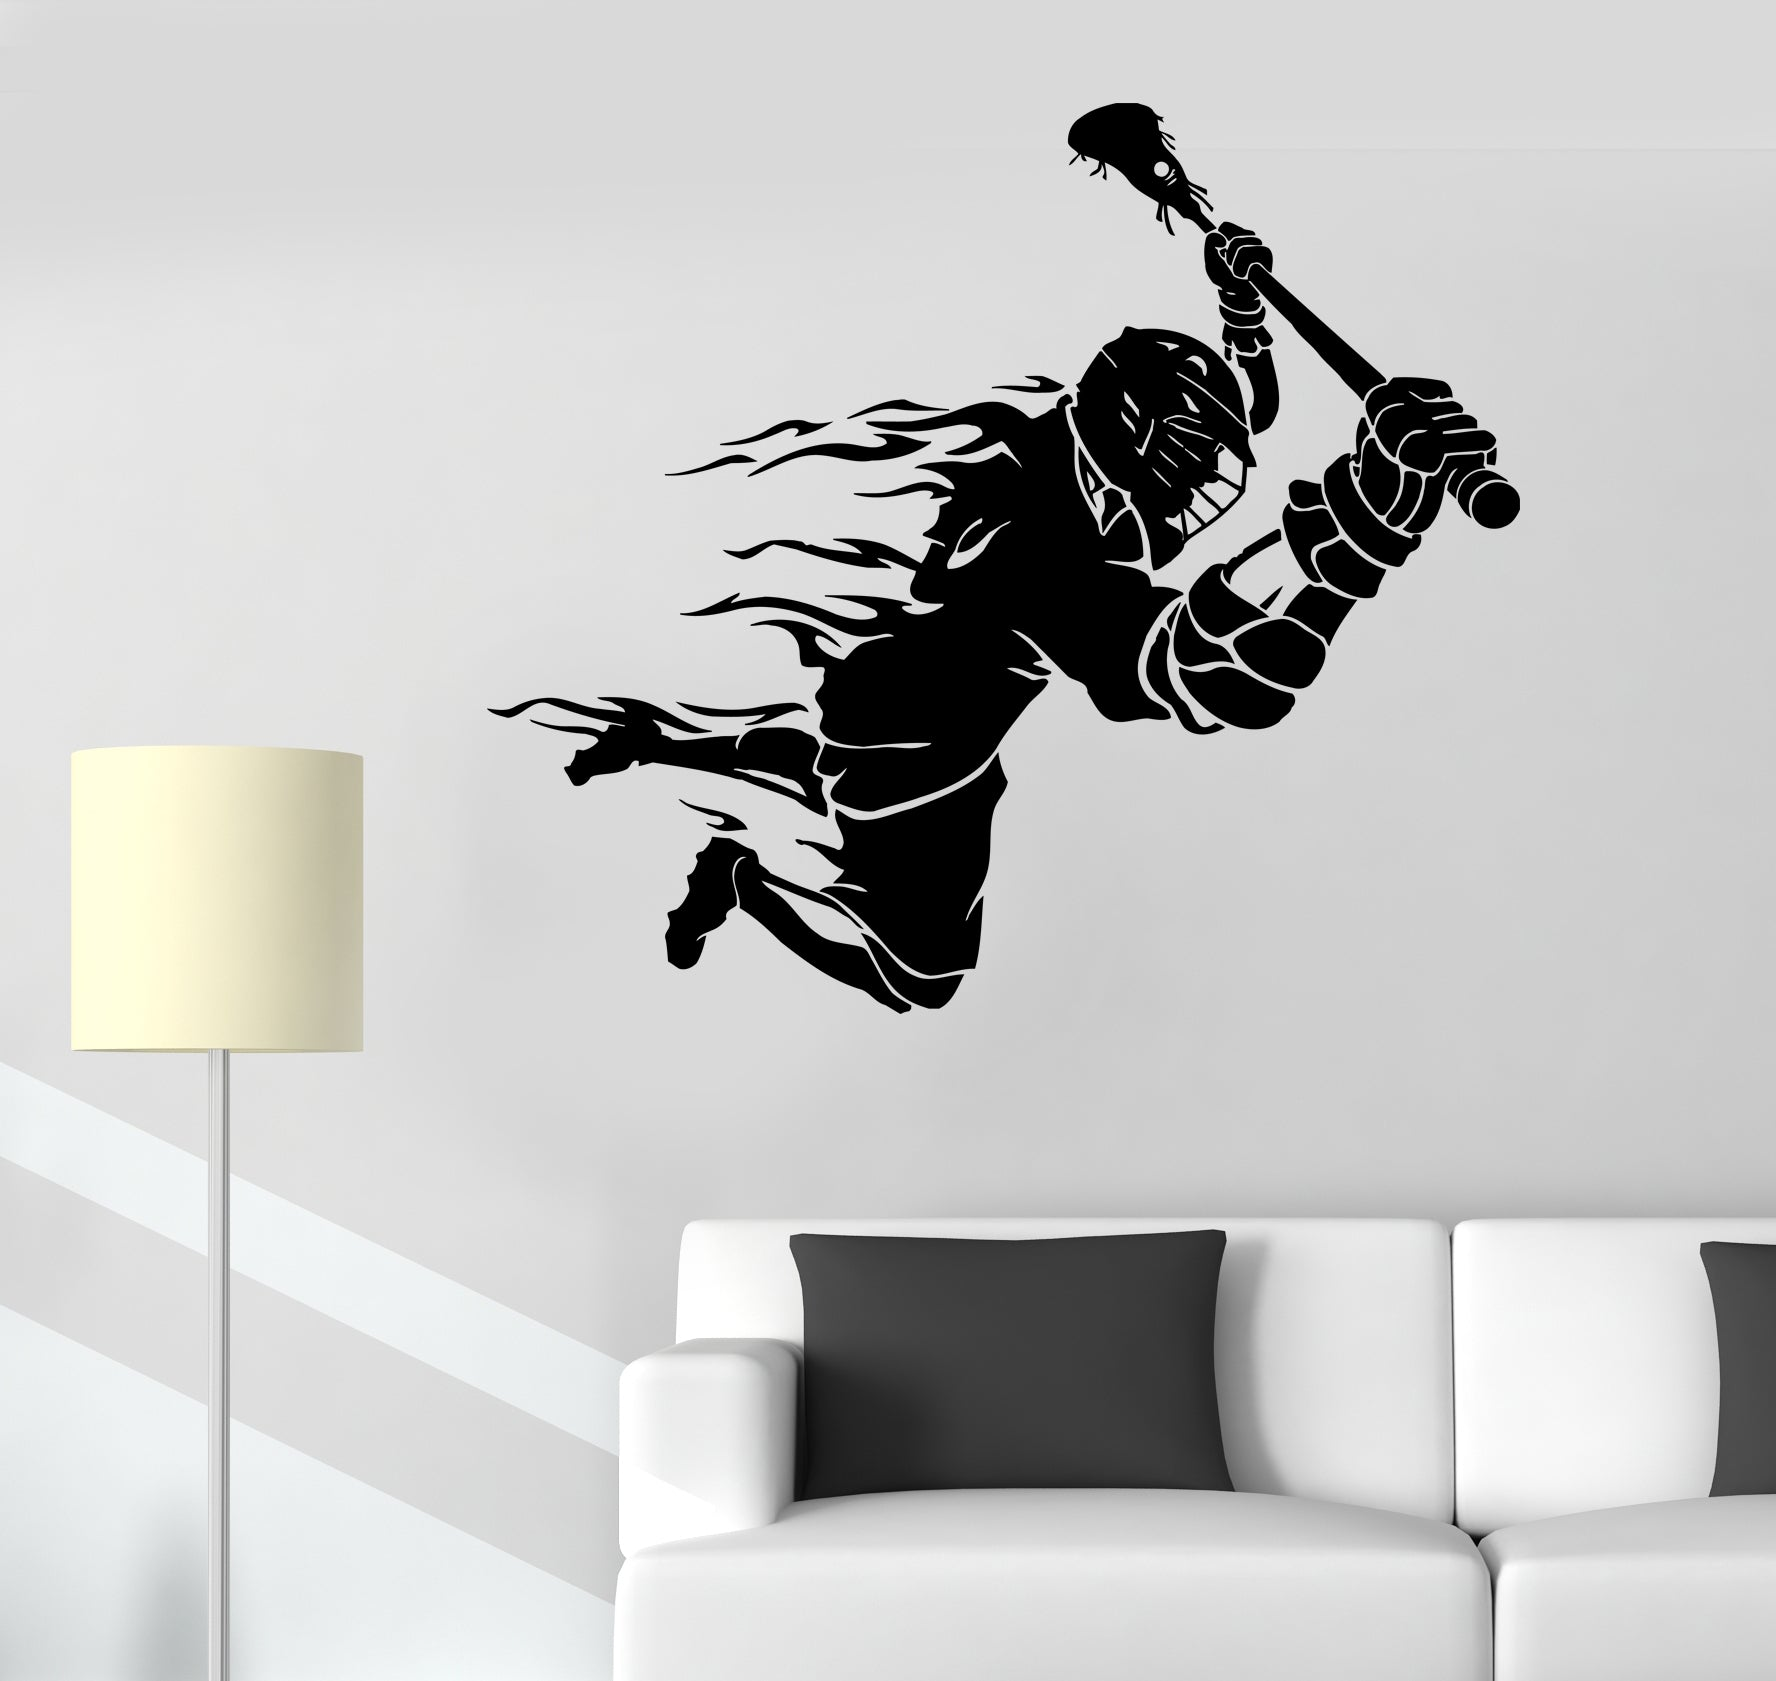 Wall Decal Lacrosse Player Ball Team Game Sport Vinyl Sticker (ed1705)